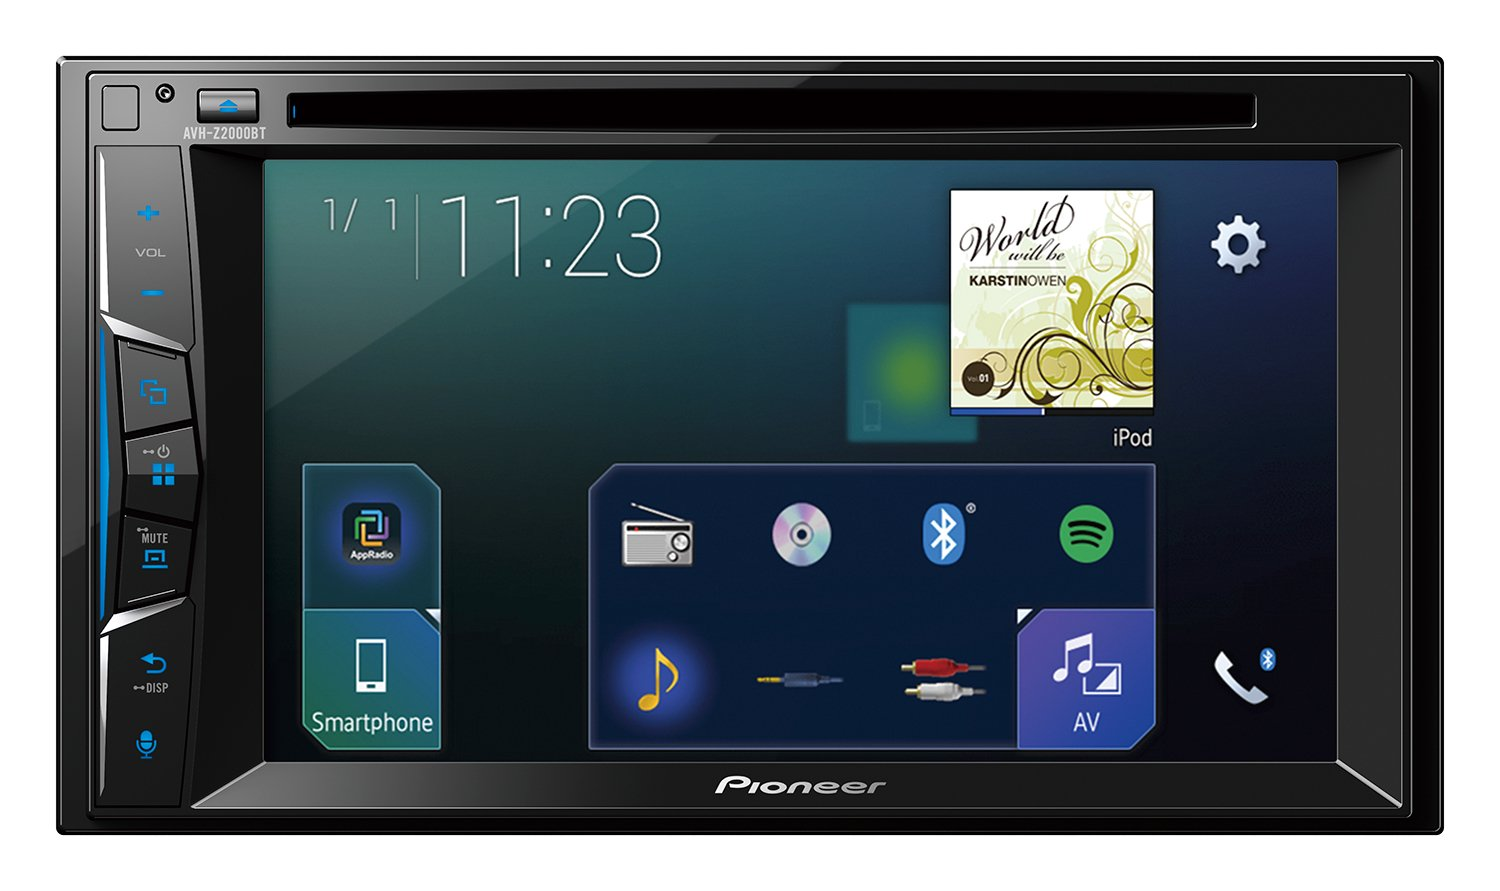 Pioneer-Autoradio-62-Zoll-Clear-Type-Touchscreen-Bluetooth-Apple-CarPlay-Waze-Navigation-AppRadio-Freisprecheinrichtung